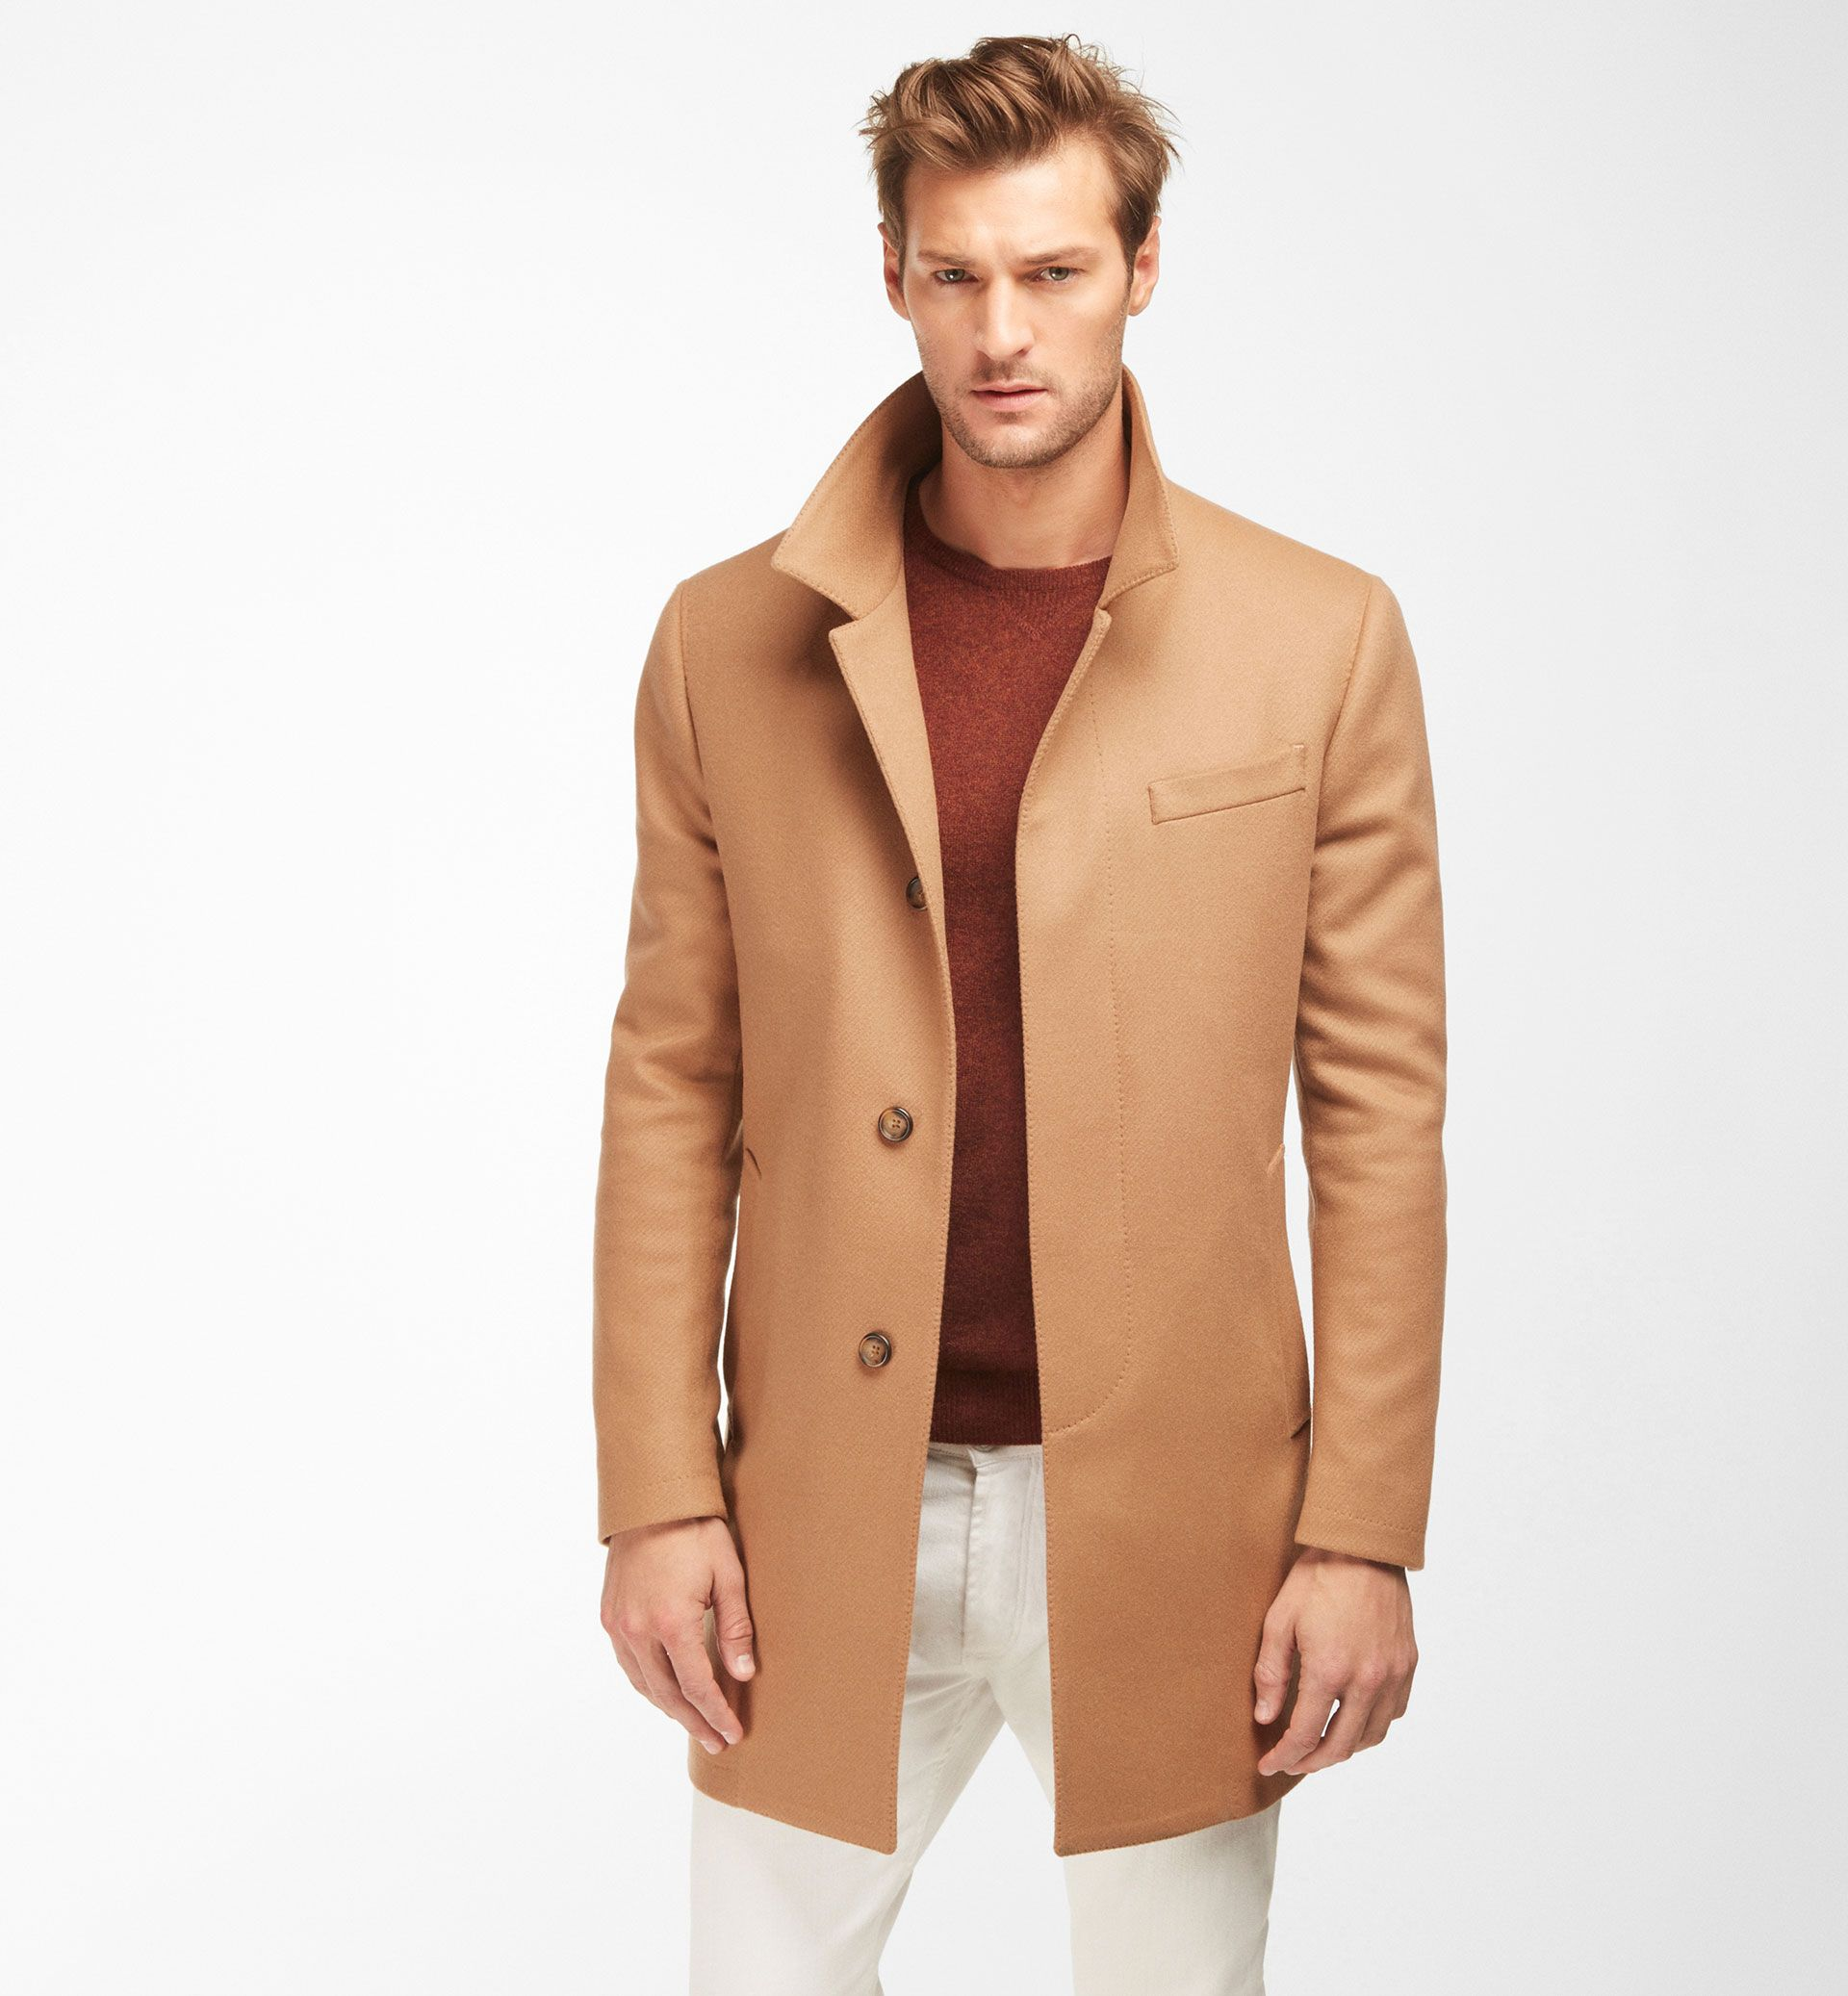 SMART CASHMERE/WOOL COAT - Coats - MEN - Ireland - Massimo Dutti ...